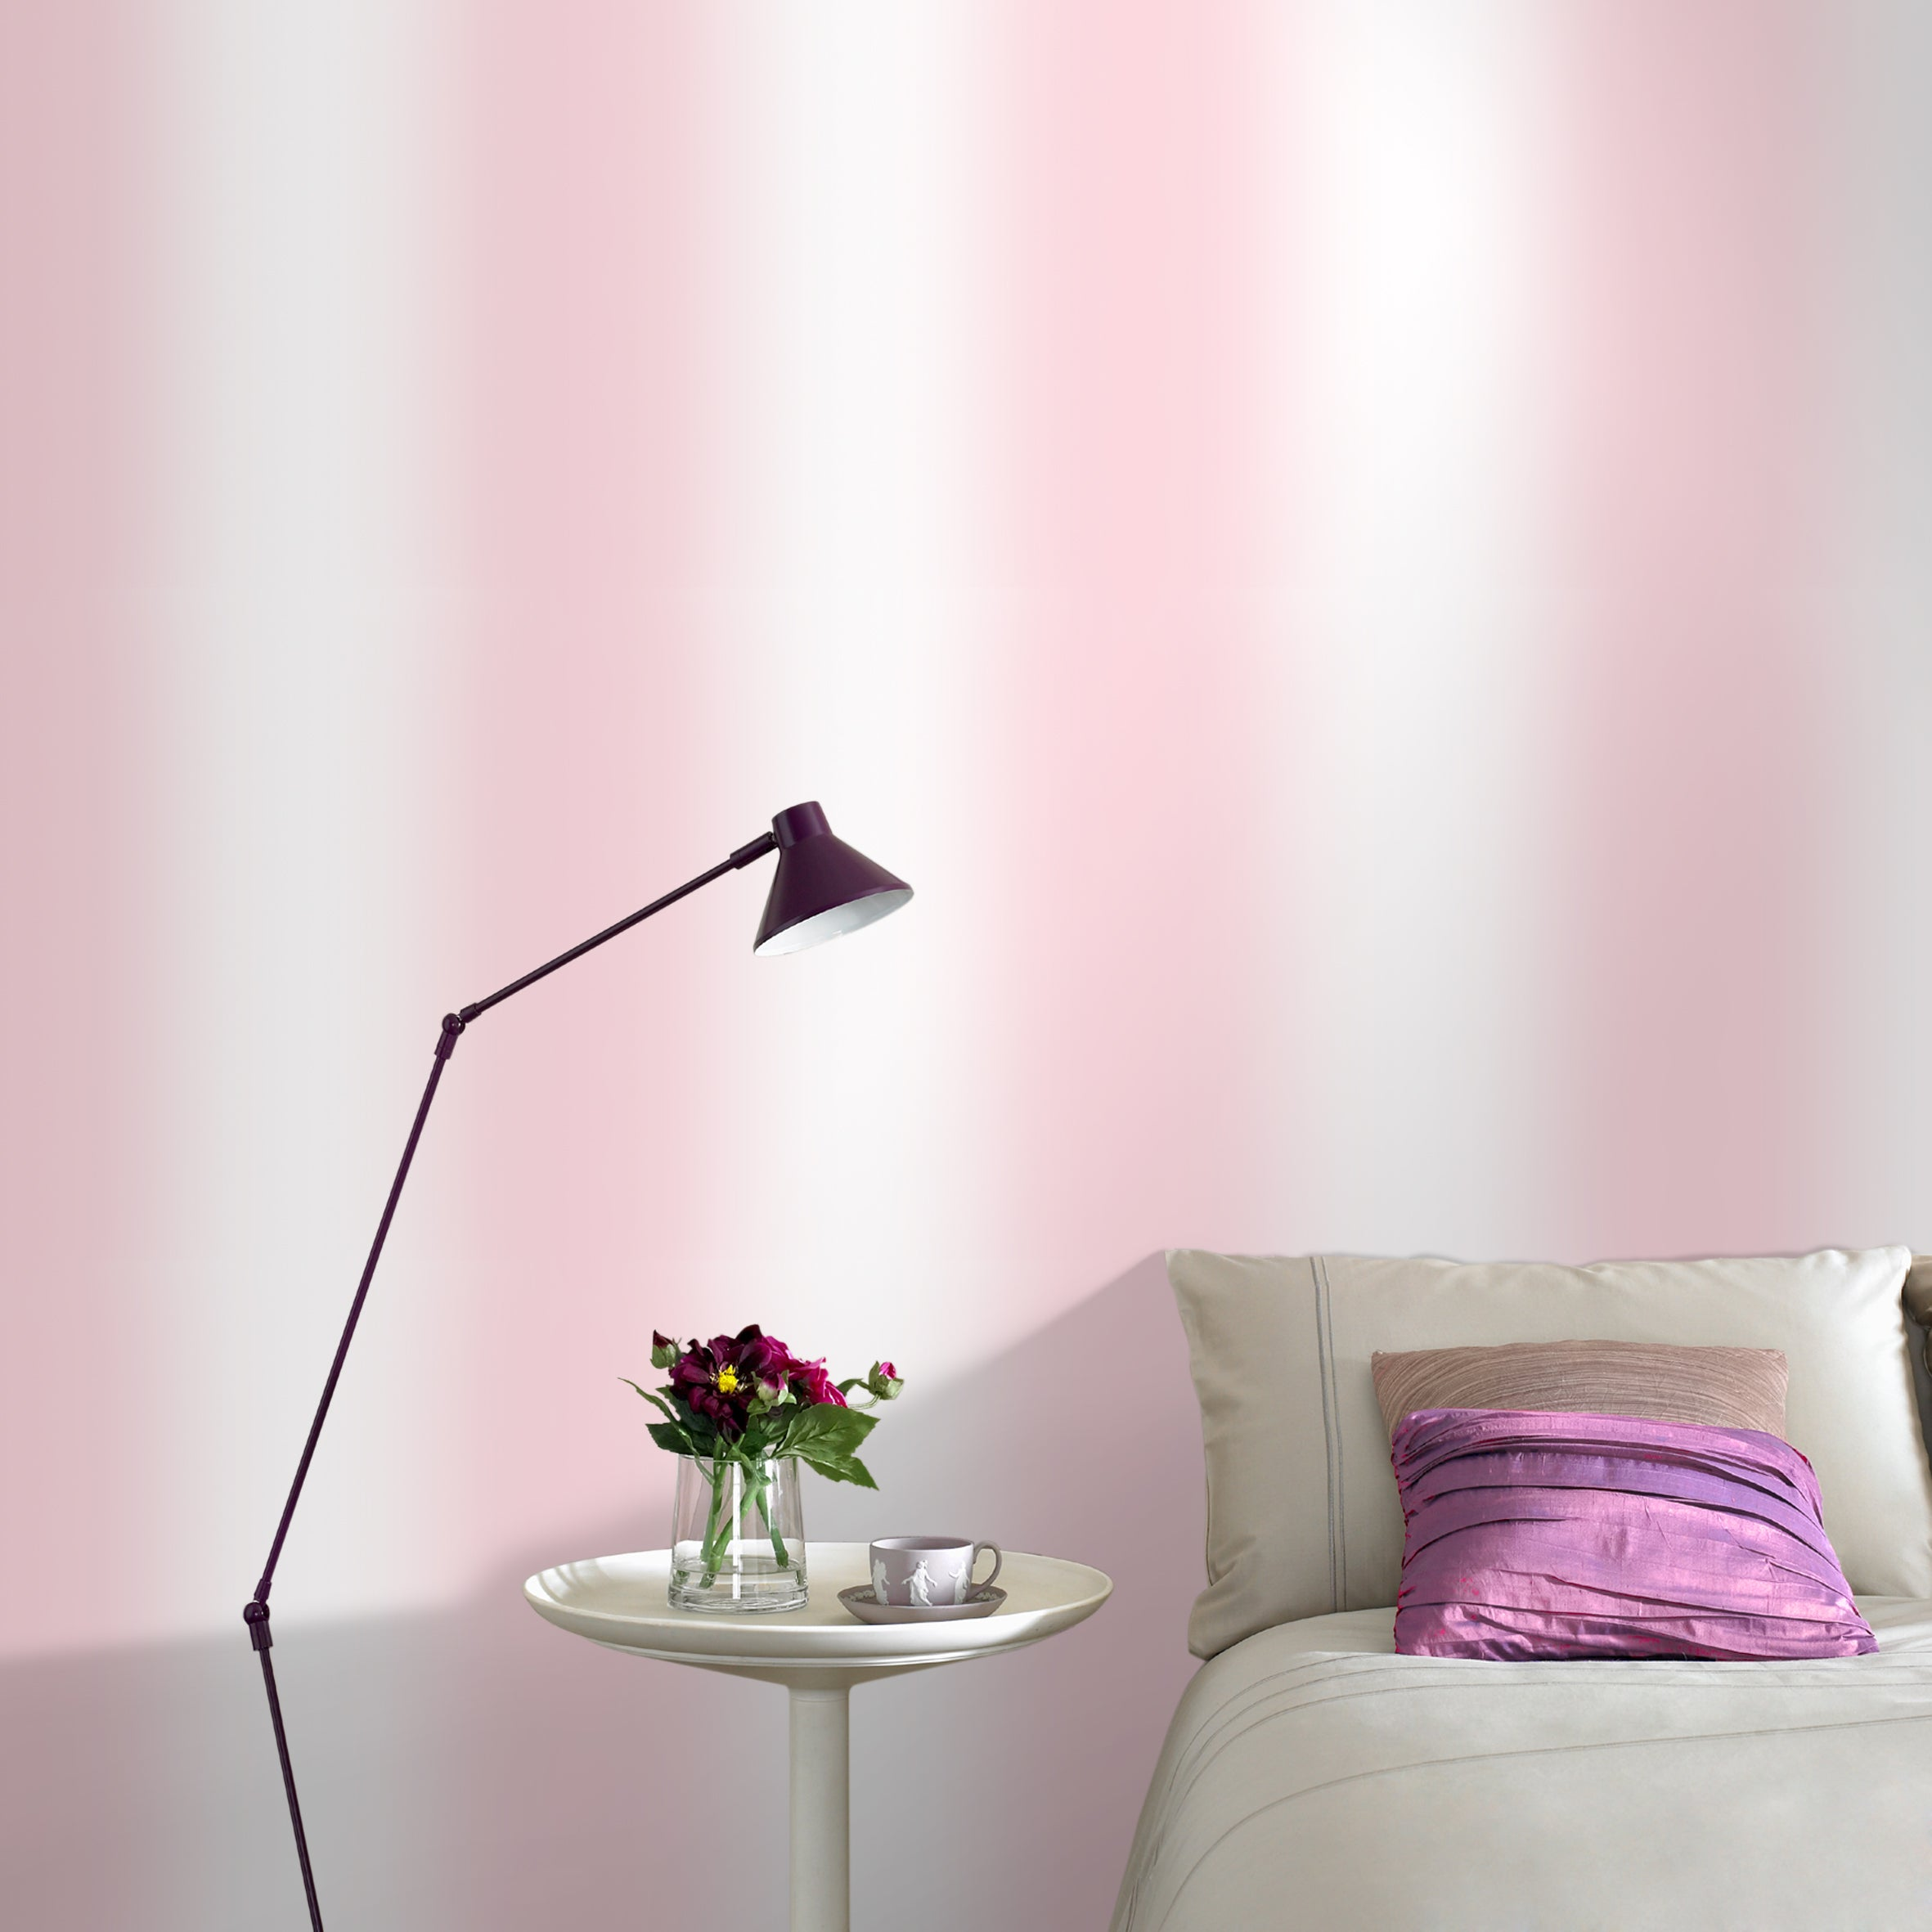 SALE Ombre Effect Wallpaper| Pink & White shades ONLY 1 LEFT